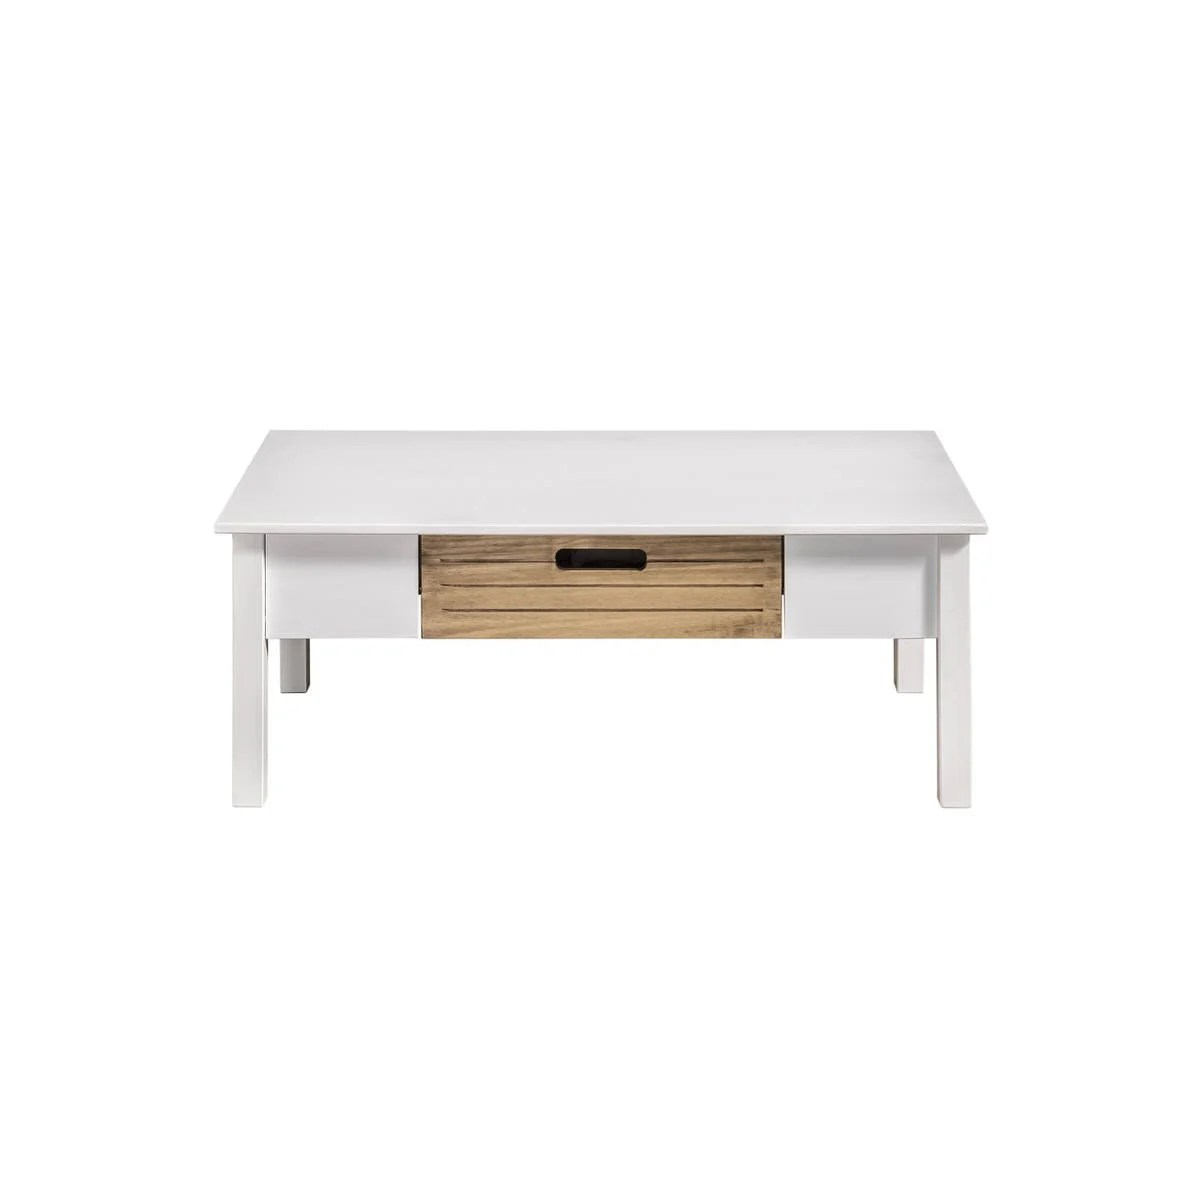 Irving Rustic Mid Century Modern White Natural Wood Coffee Table By Manhattan Comfort